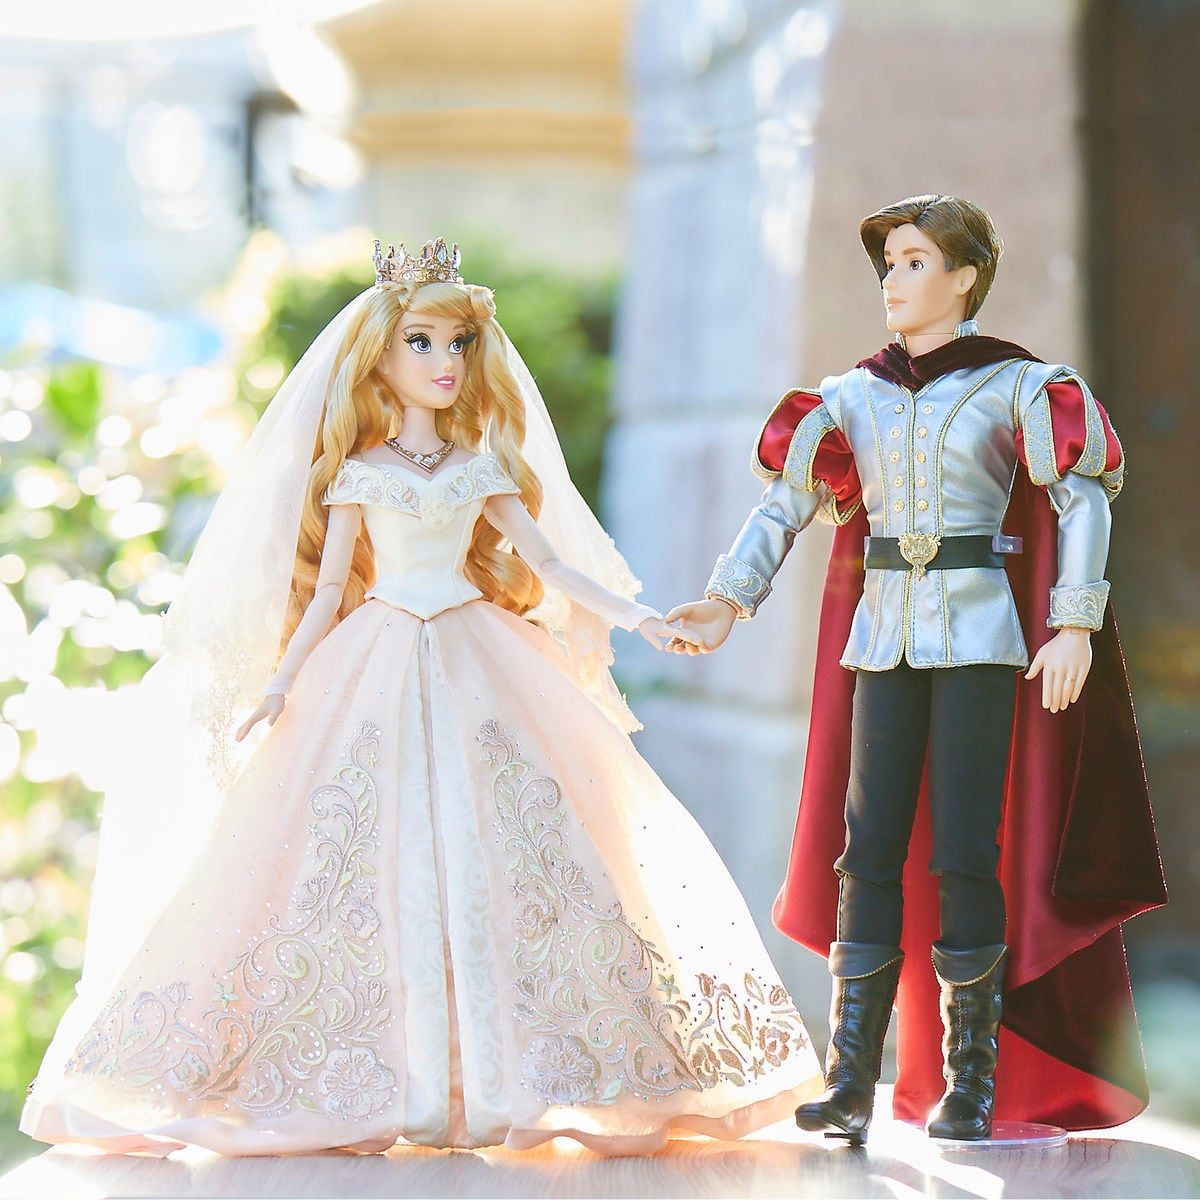 Aurora And Prince Phillip Limited Edition Wedding Doll Set Sleeping Beauty 60th Anniversary 17 Disney Princess Dresses Wedding Doll Disney Barbie Dolls